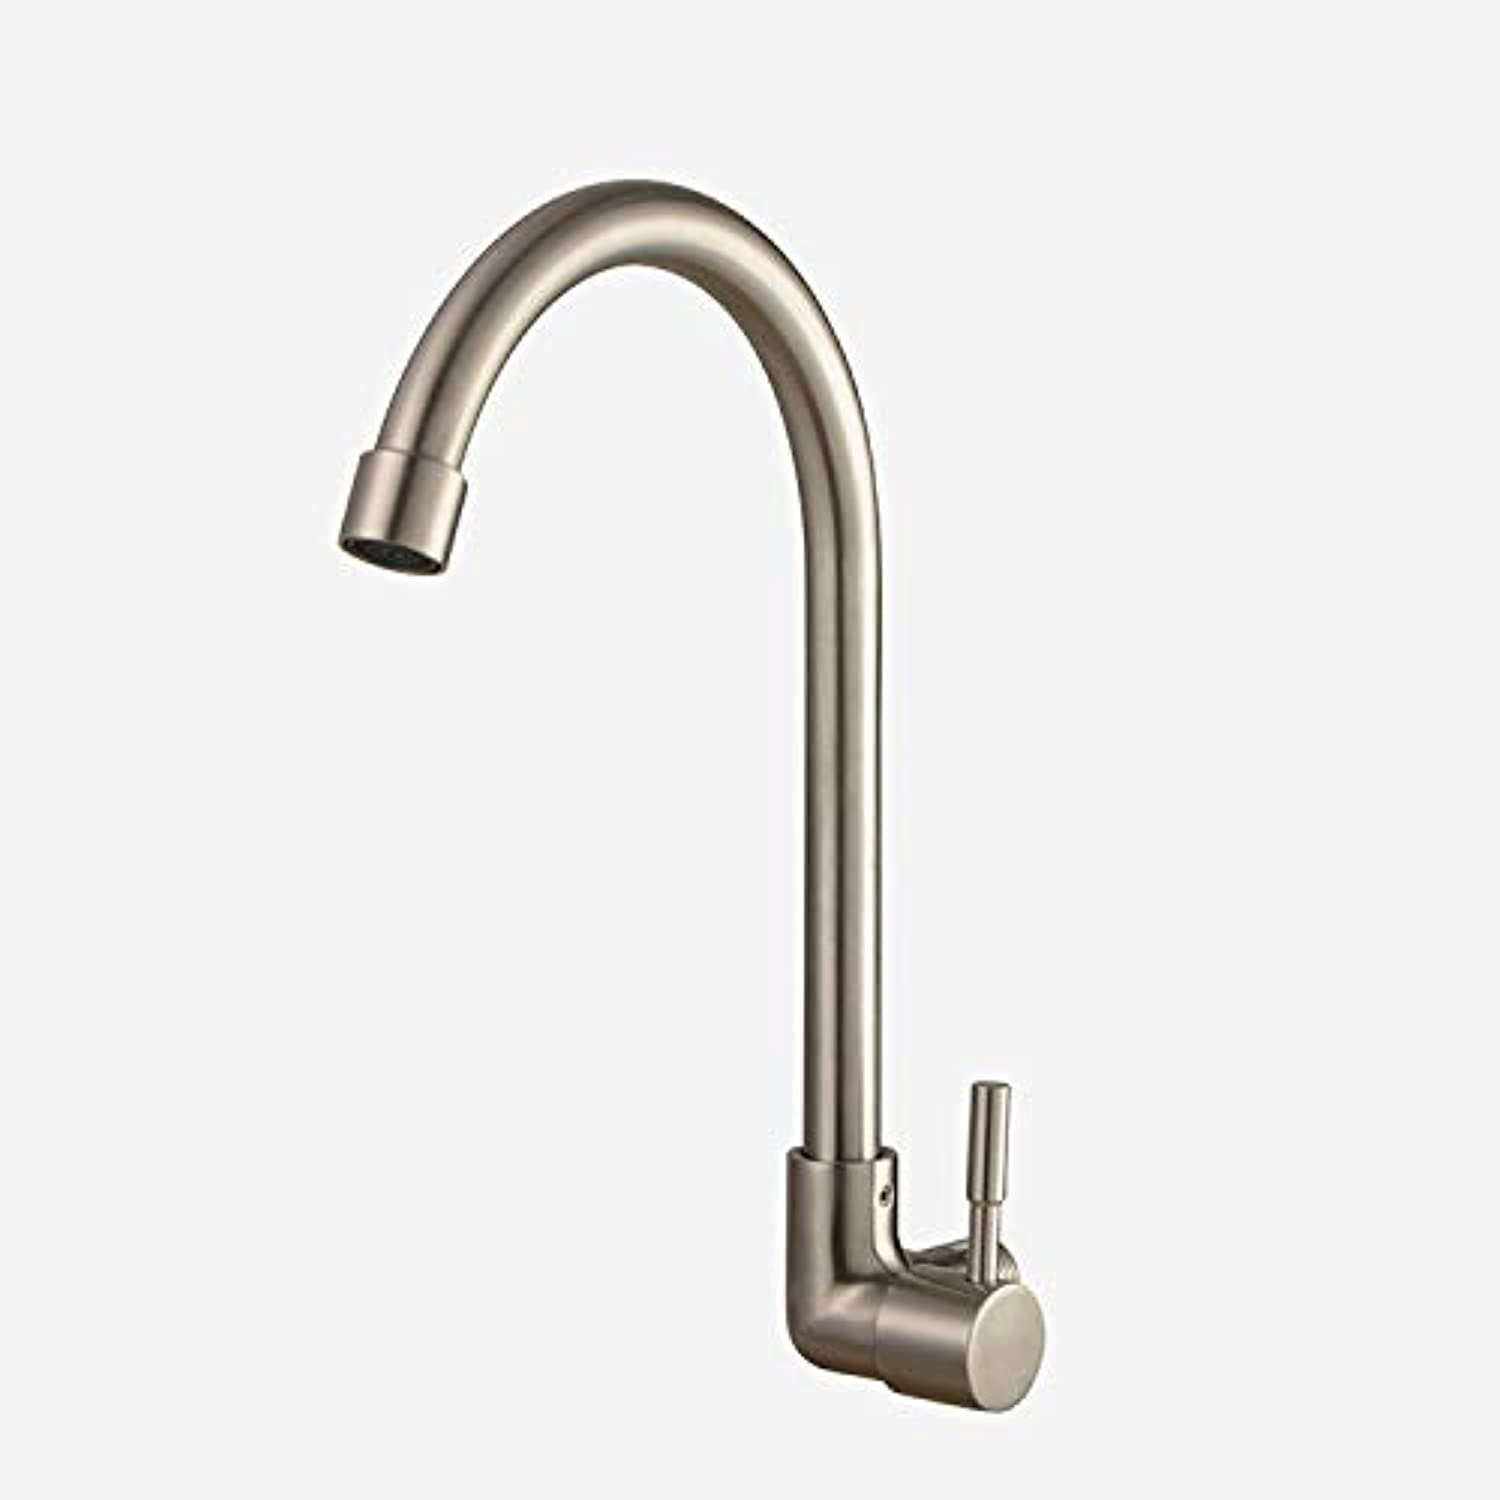 Zwj-song Kitchen Cold and hot Water Faucet Kitchen Brass redary Nozzle Traditional Double Lever Single Handle Kitchen Sink redary Nozzle Double Nozzle Double Lever 319 Stainless Steel Mixer